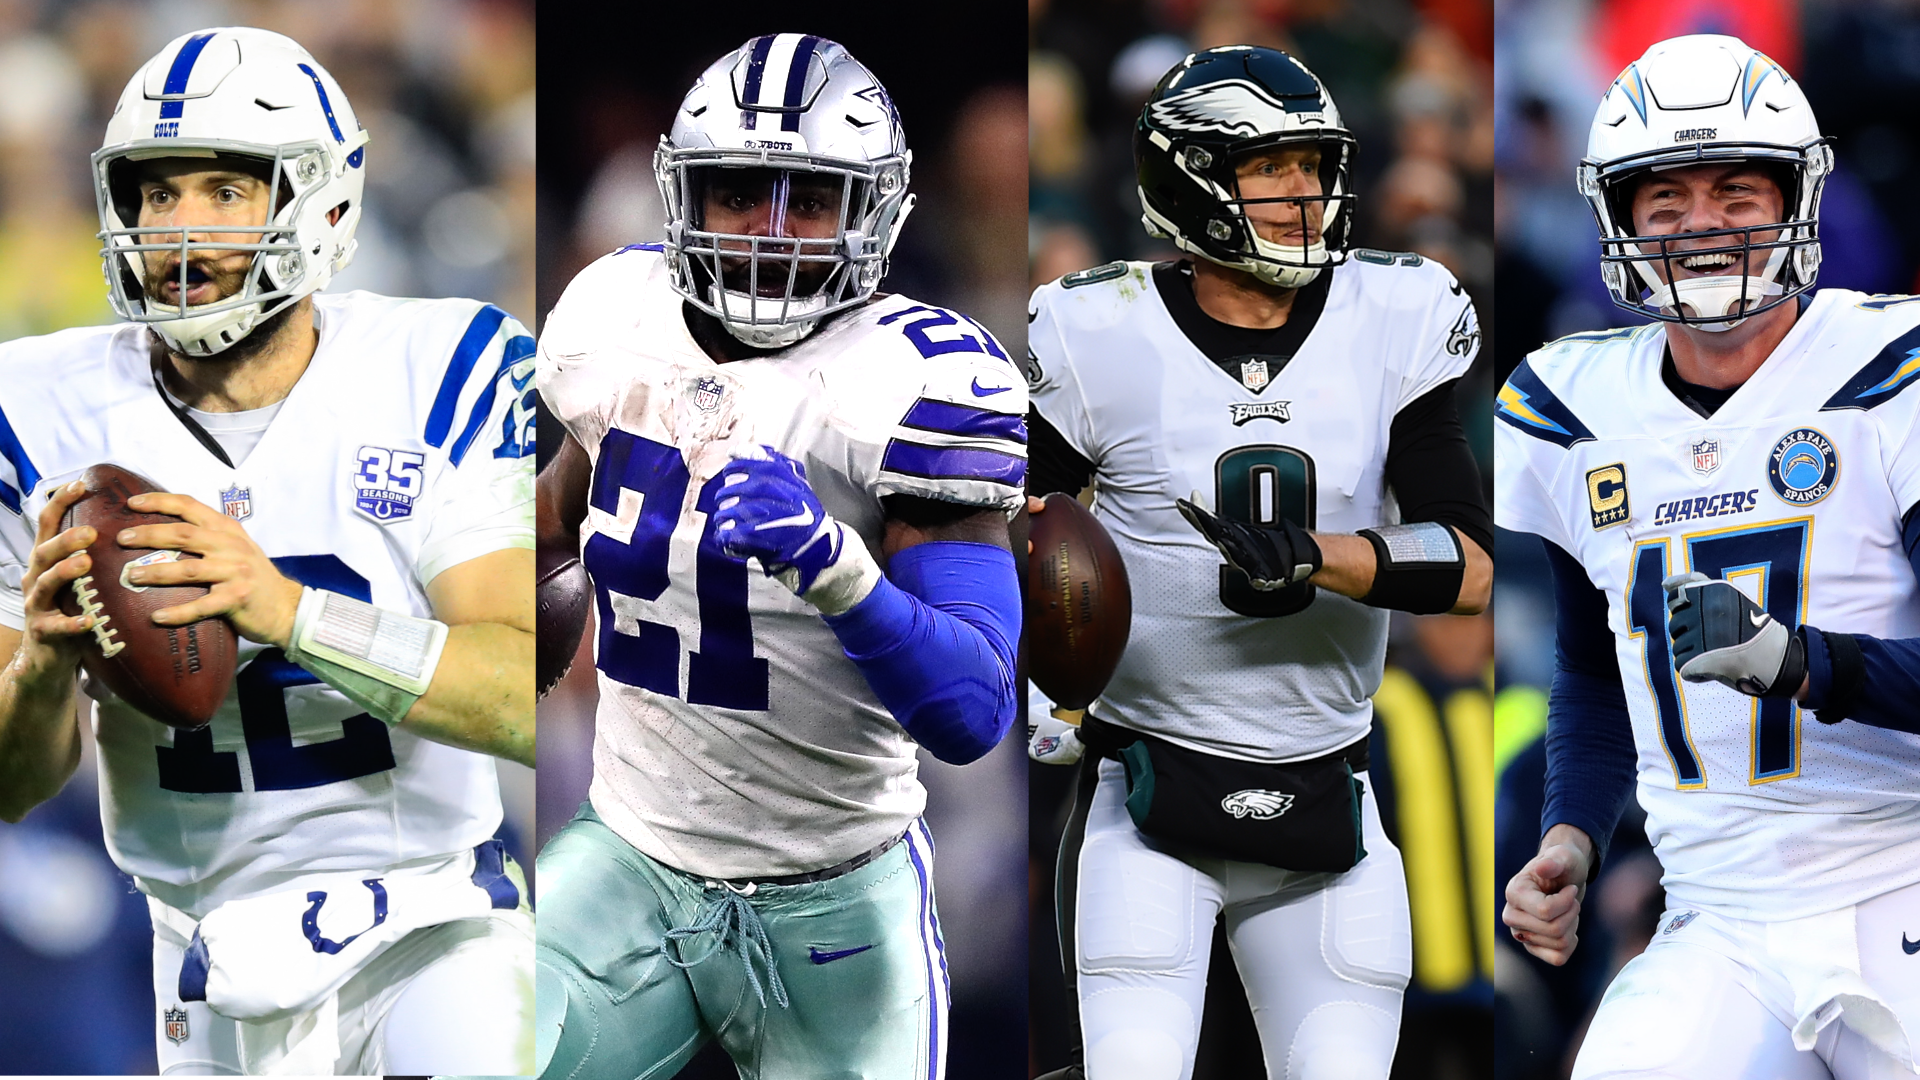 Best Nfl Teams 2020.Nfl Predictions Best Teams And Betting Odds For Super Bowl